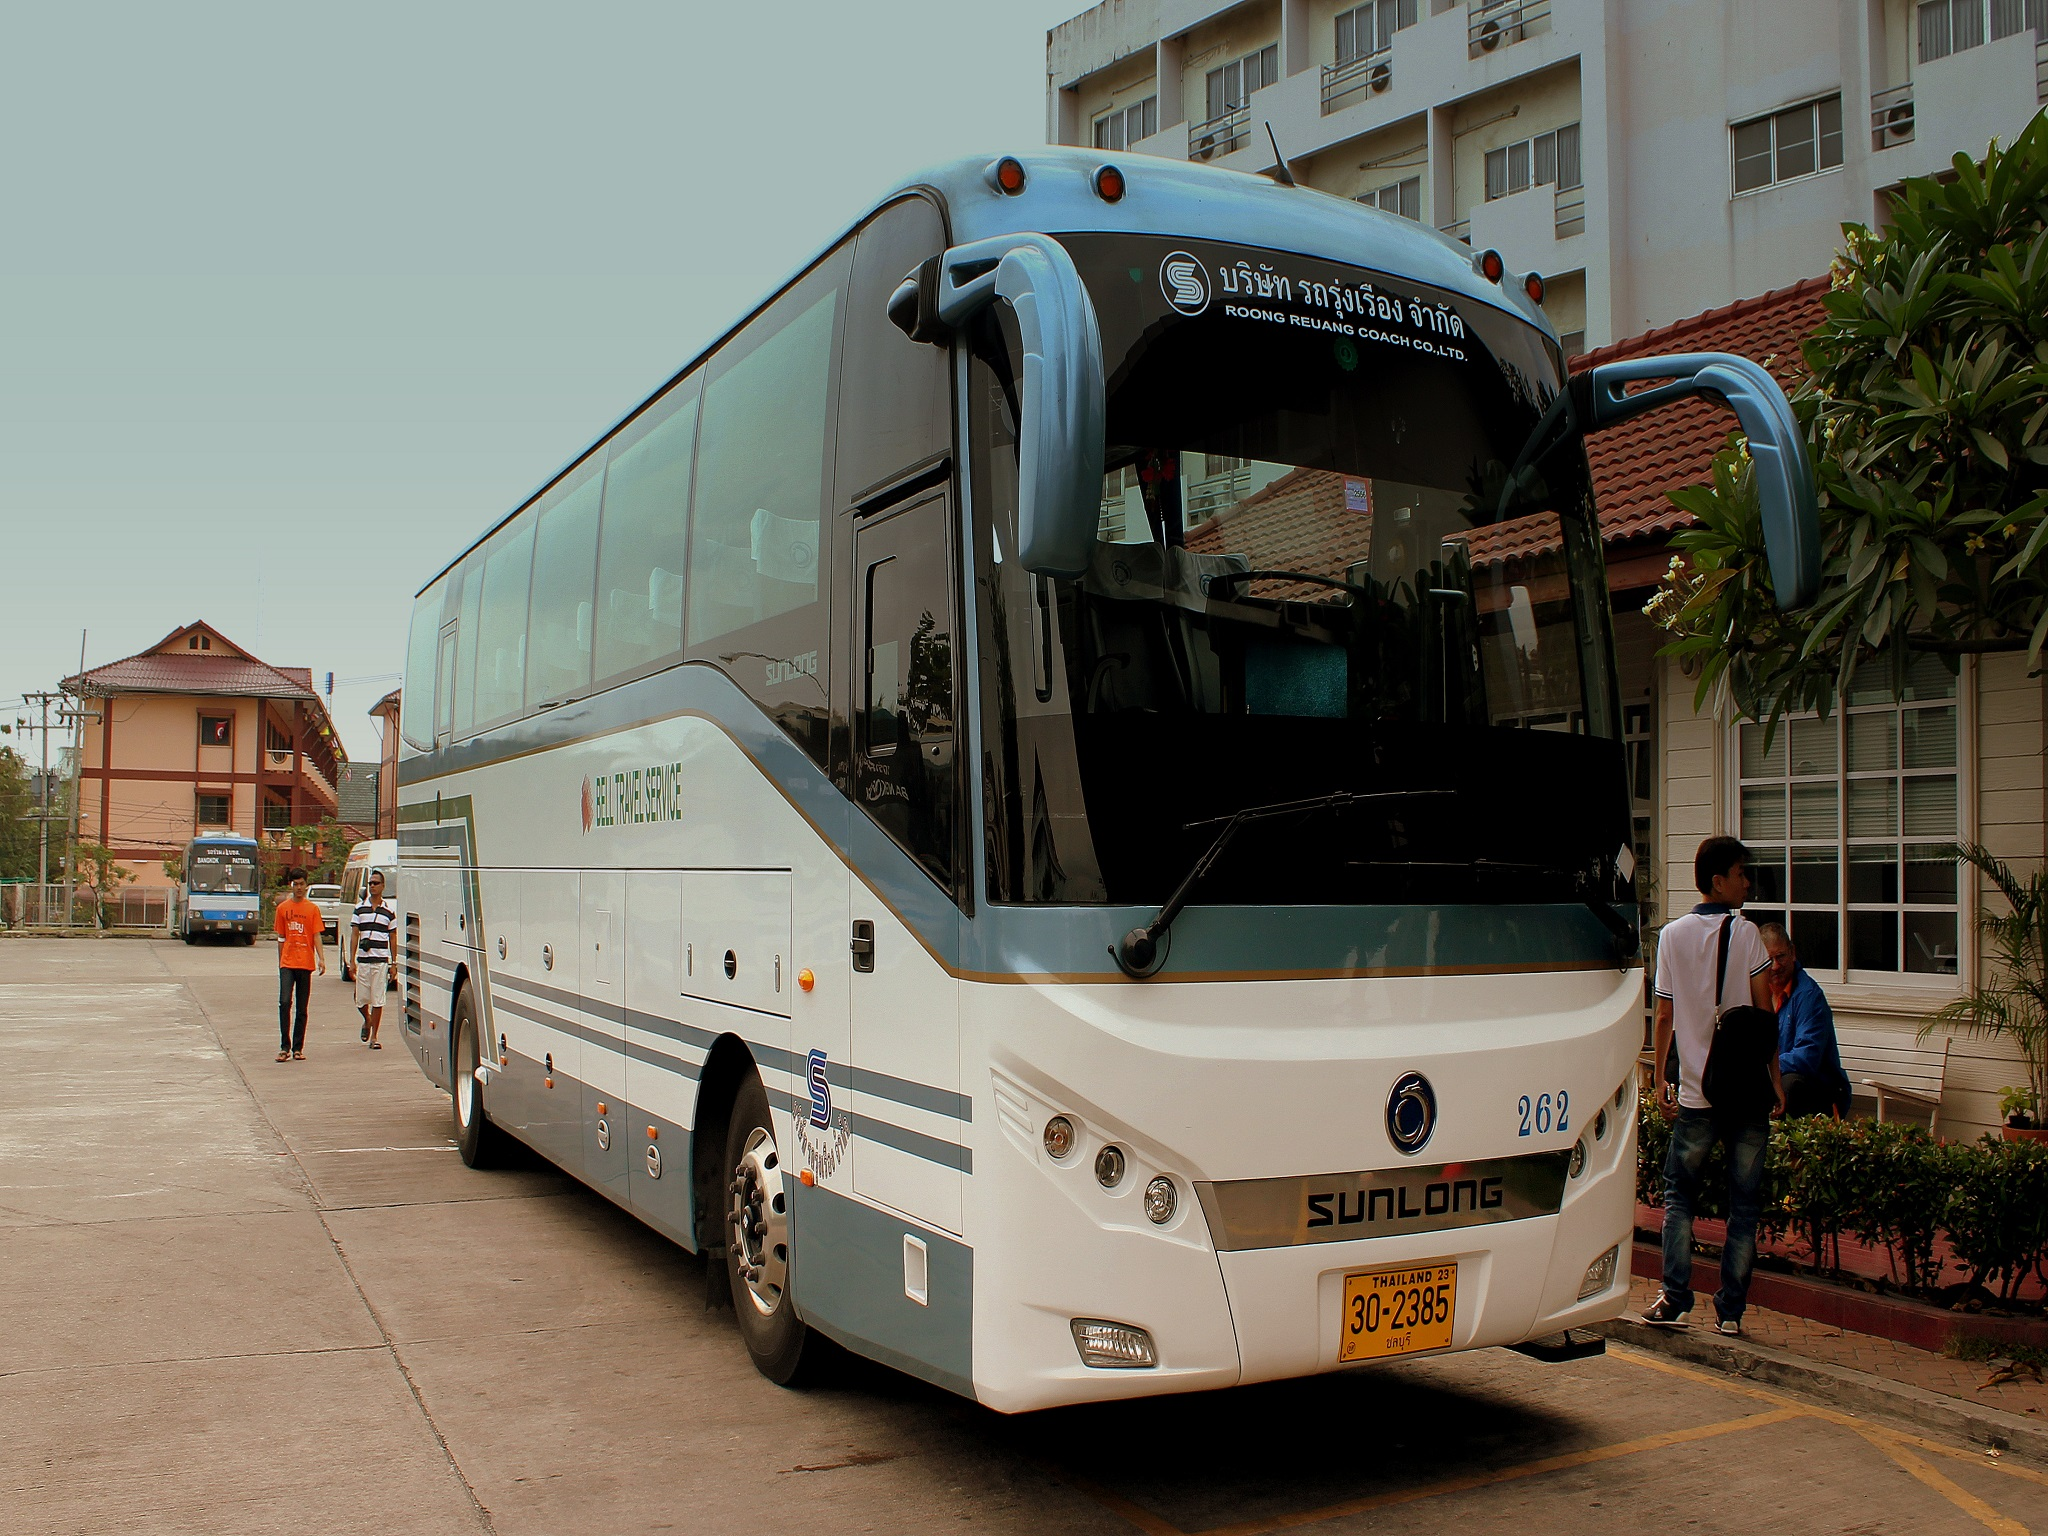 Travelling from Bangkok to Pattaya by shuttle bus